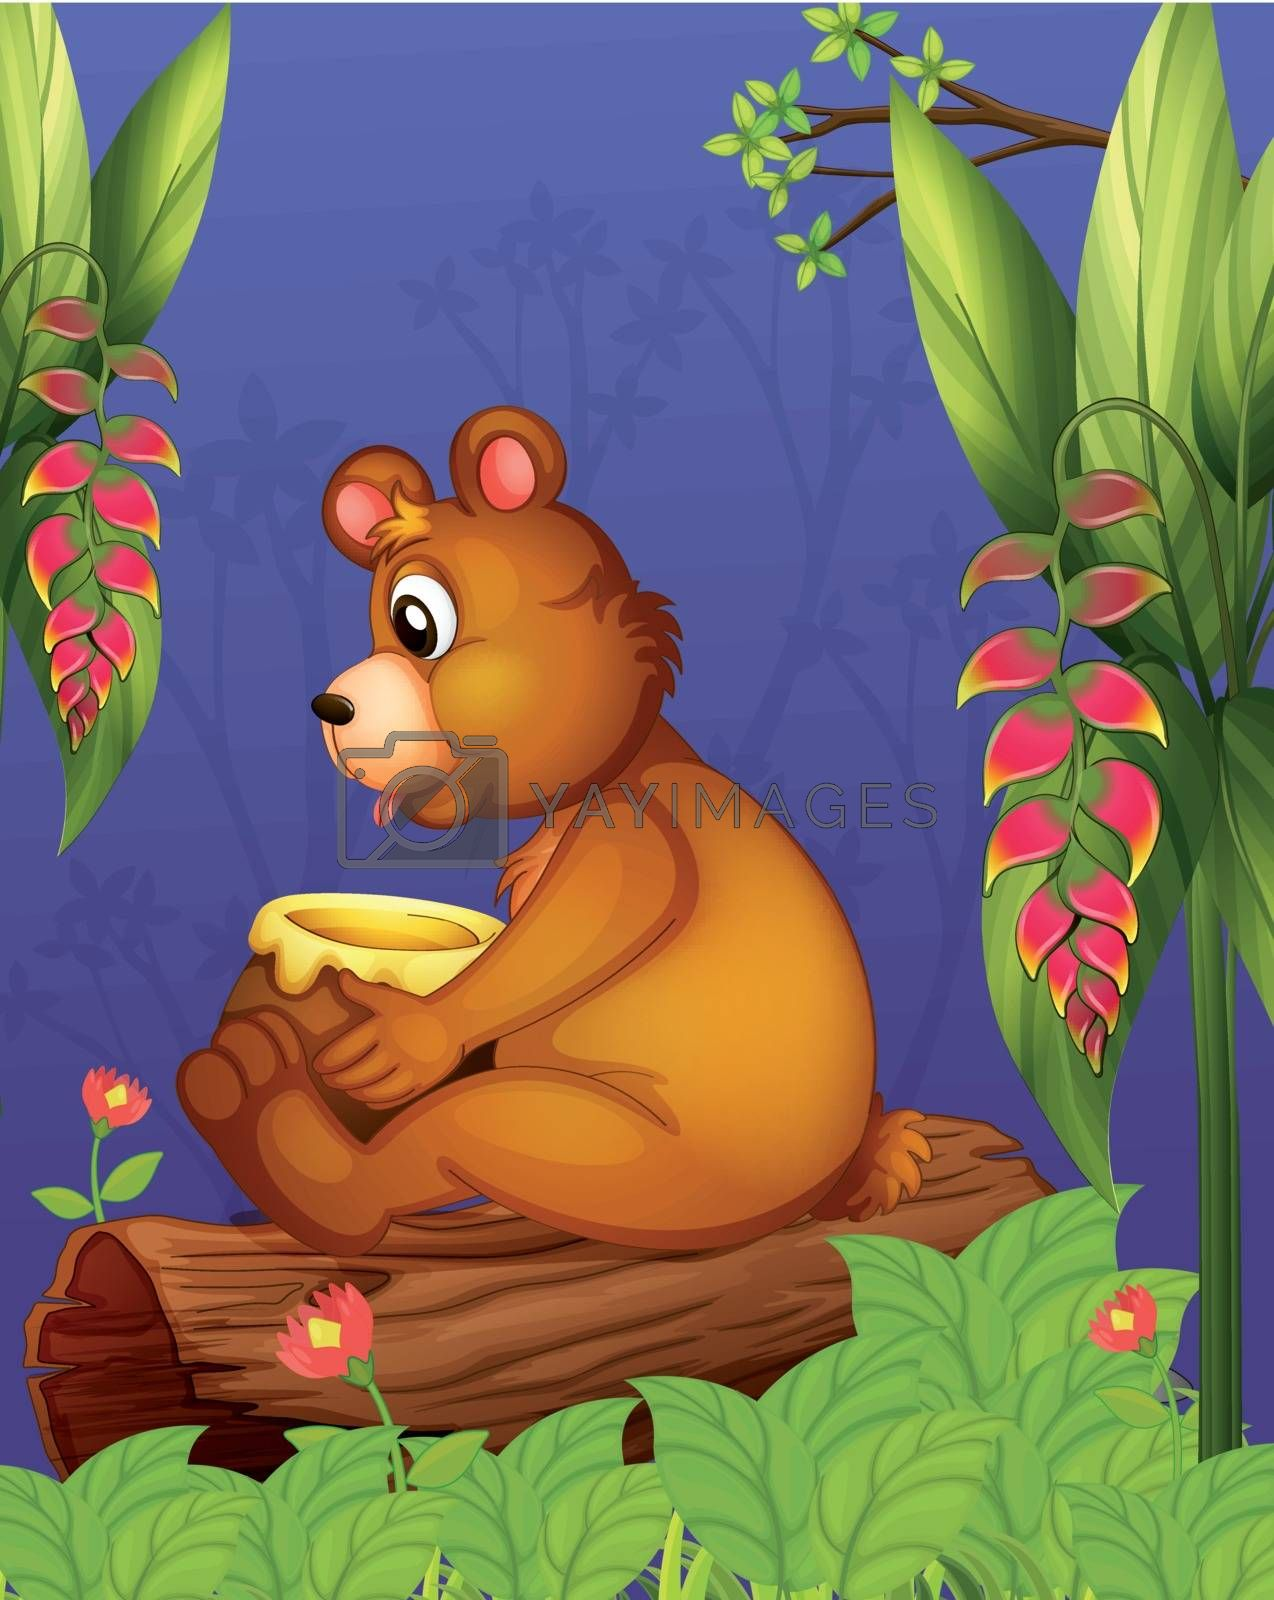 Illustration of a bear sitting in a wood